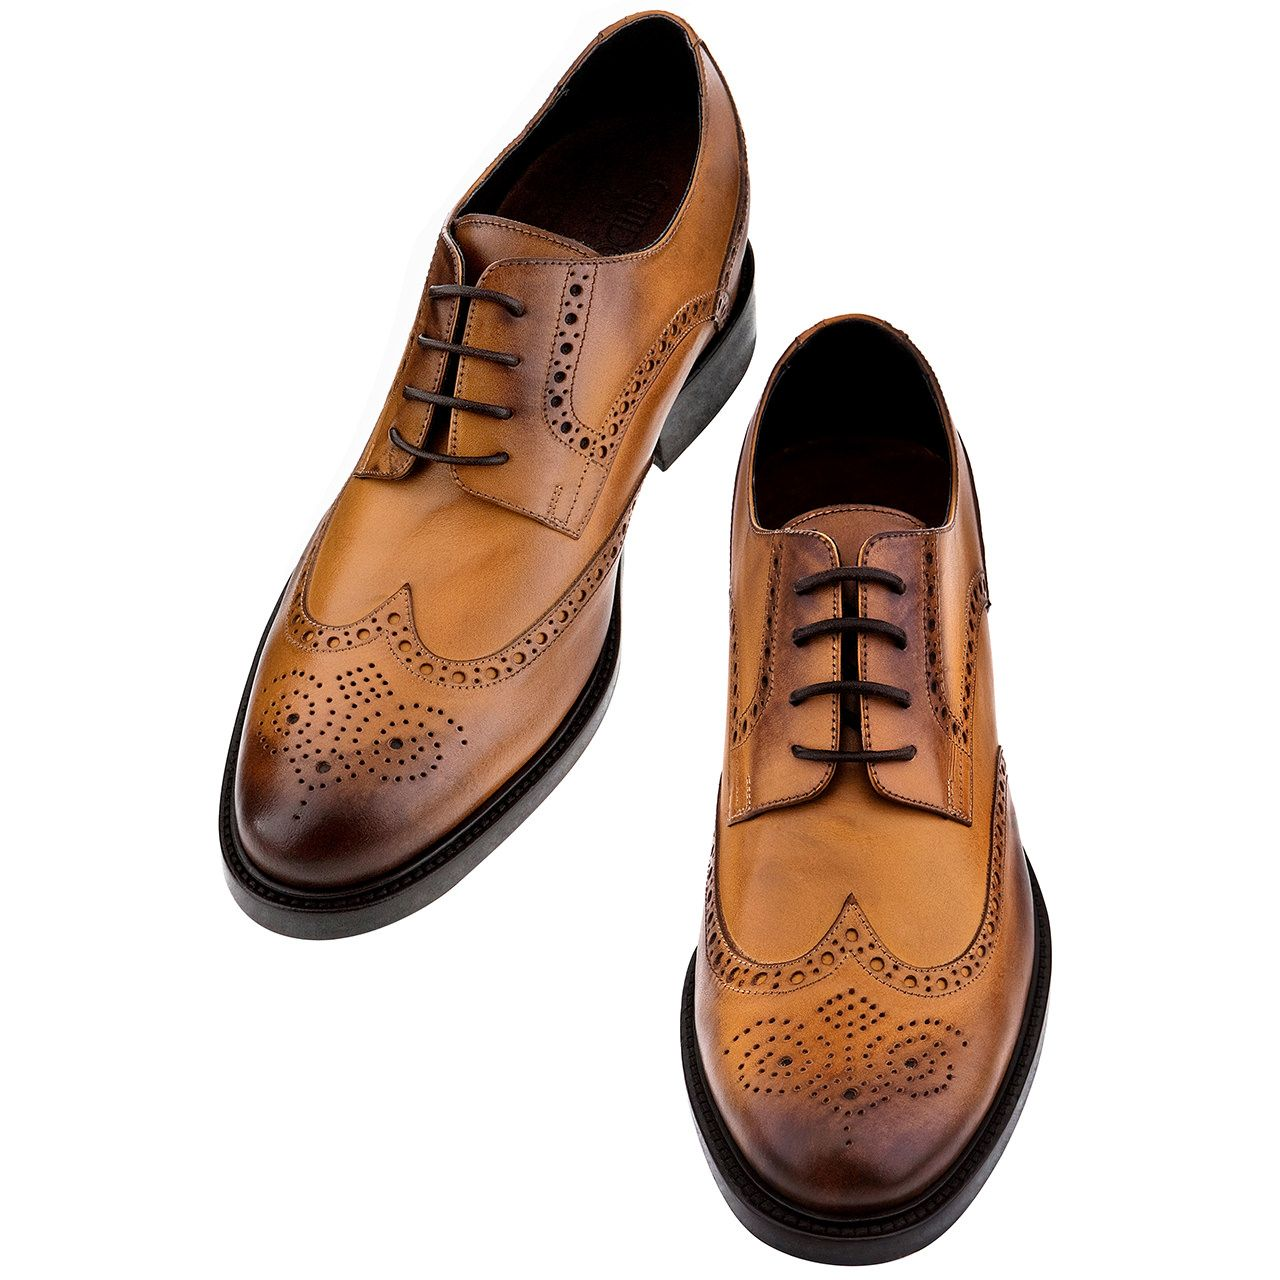 Rodeo Drive Elevator Dress Shoes Shoes Spectator